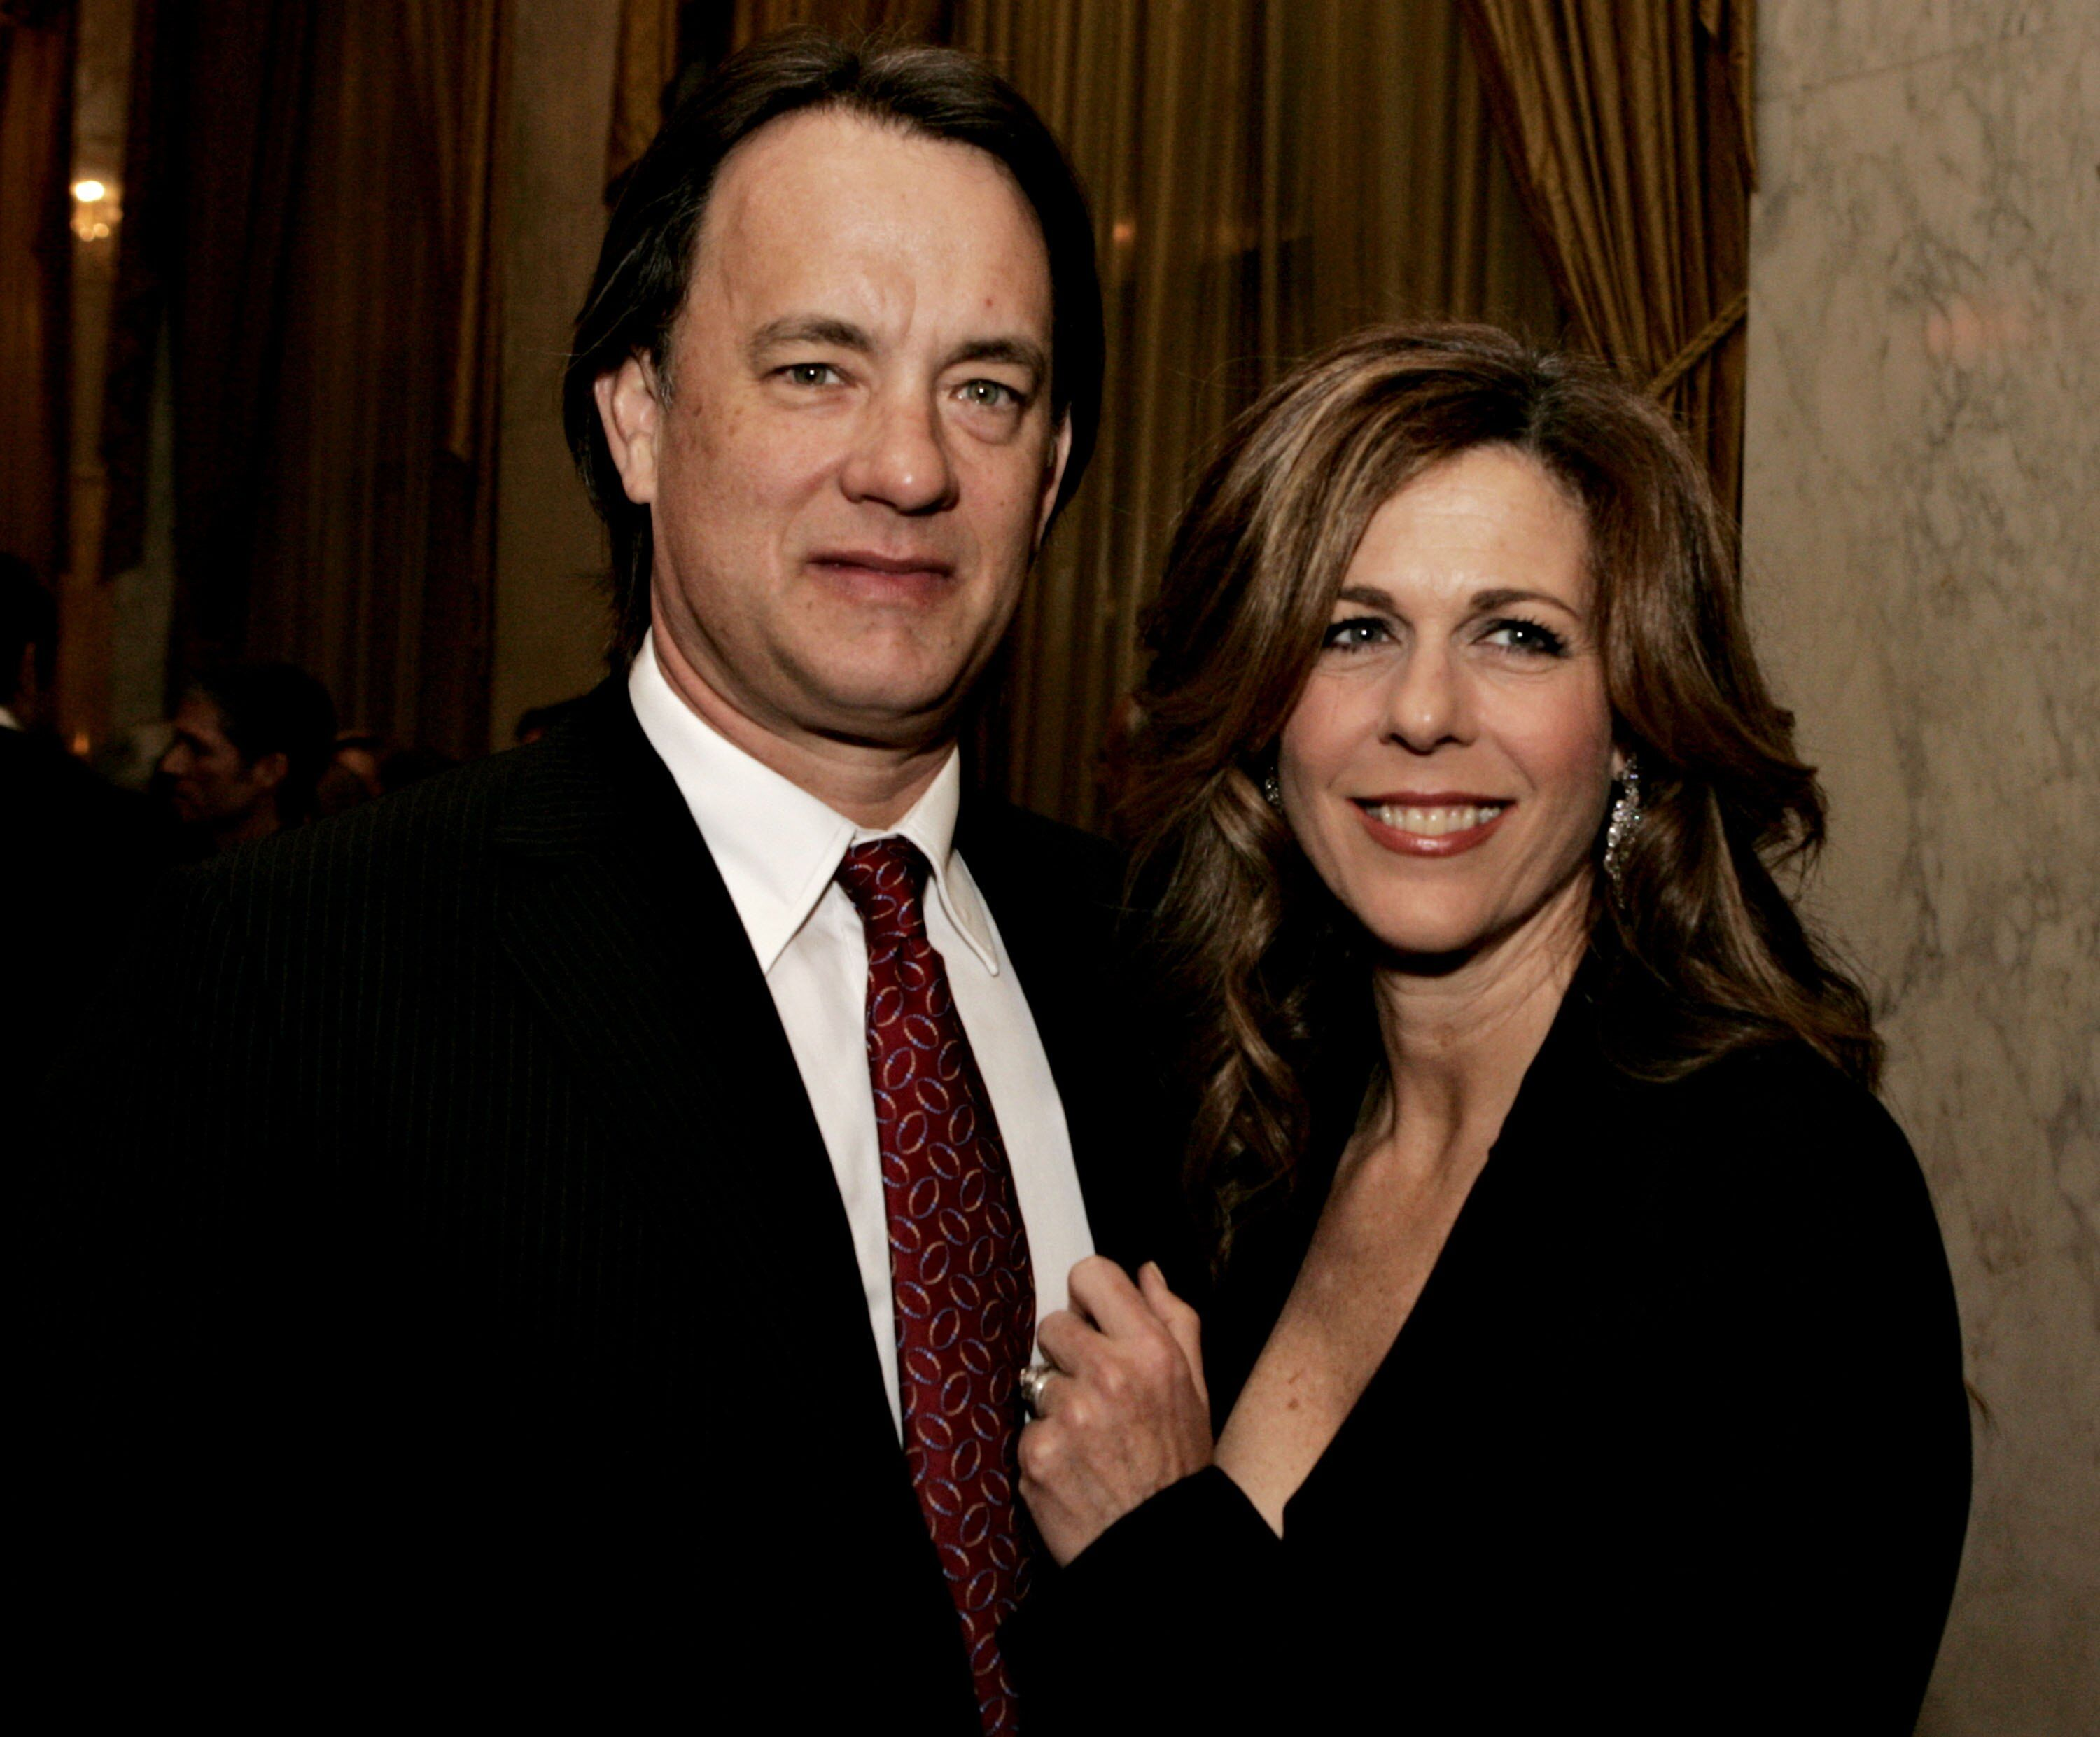 Tom Hanks and actress Rita Wilson speak during the EIF's Women's Cancer Research Fund honoring Melissa Etheridge. | Source: Getty Images